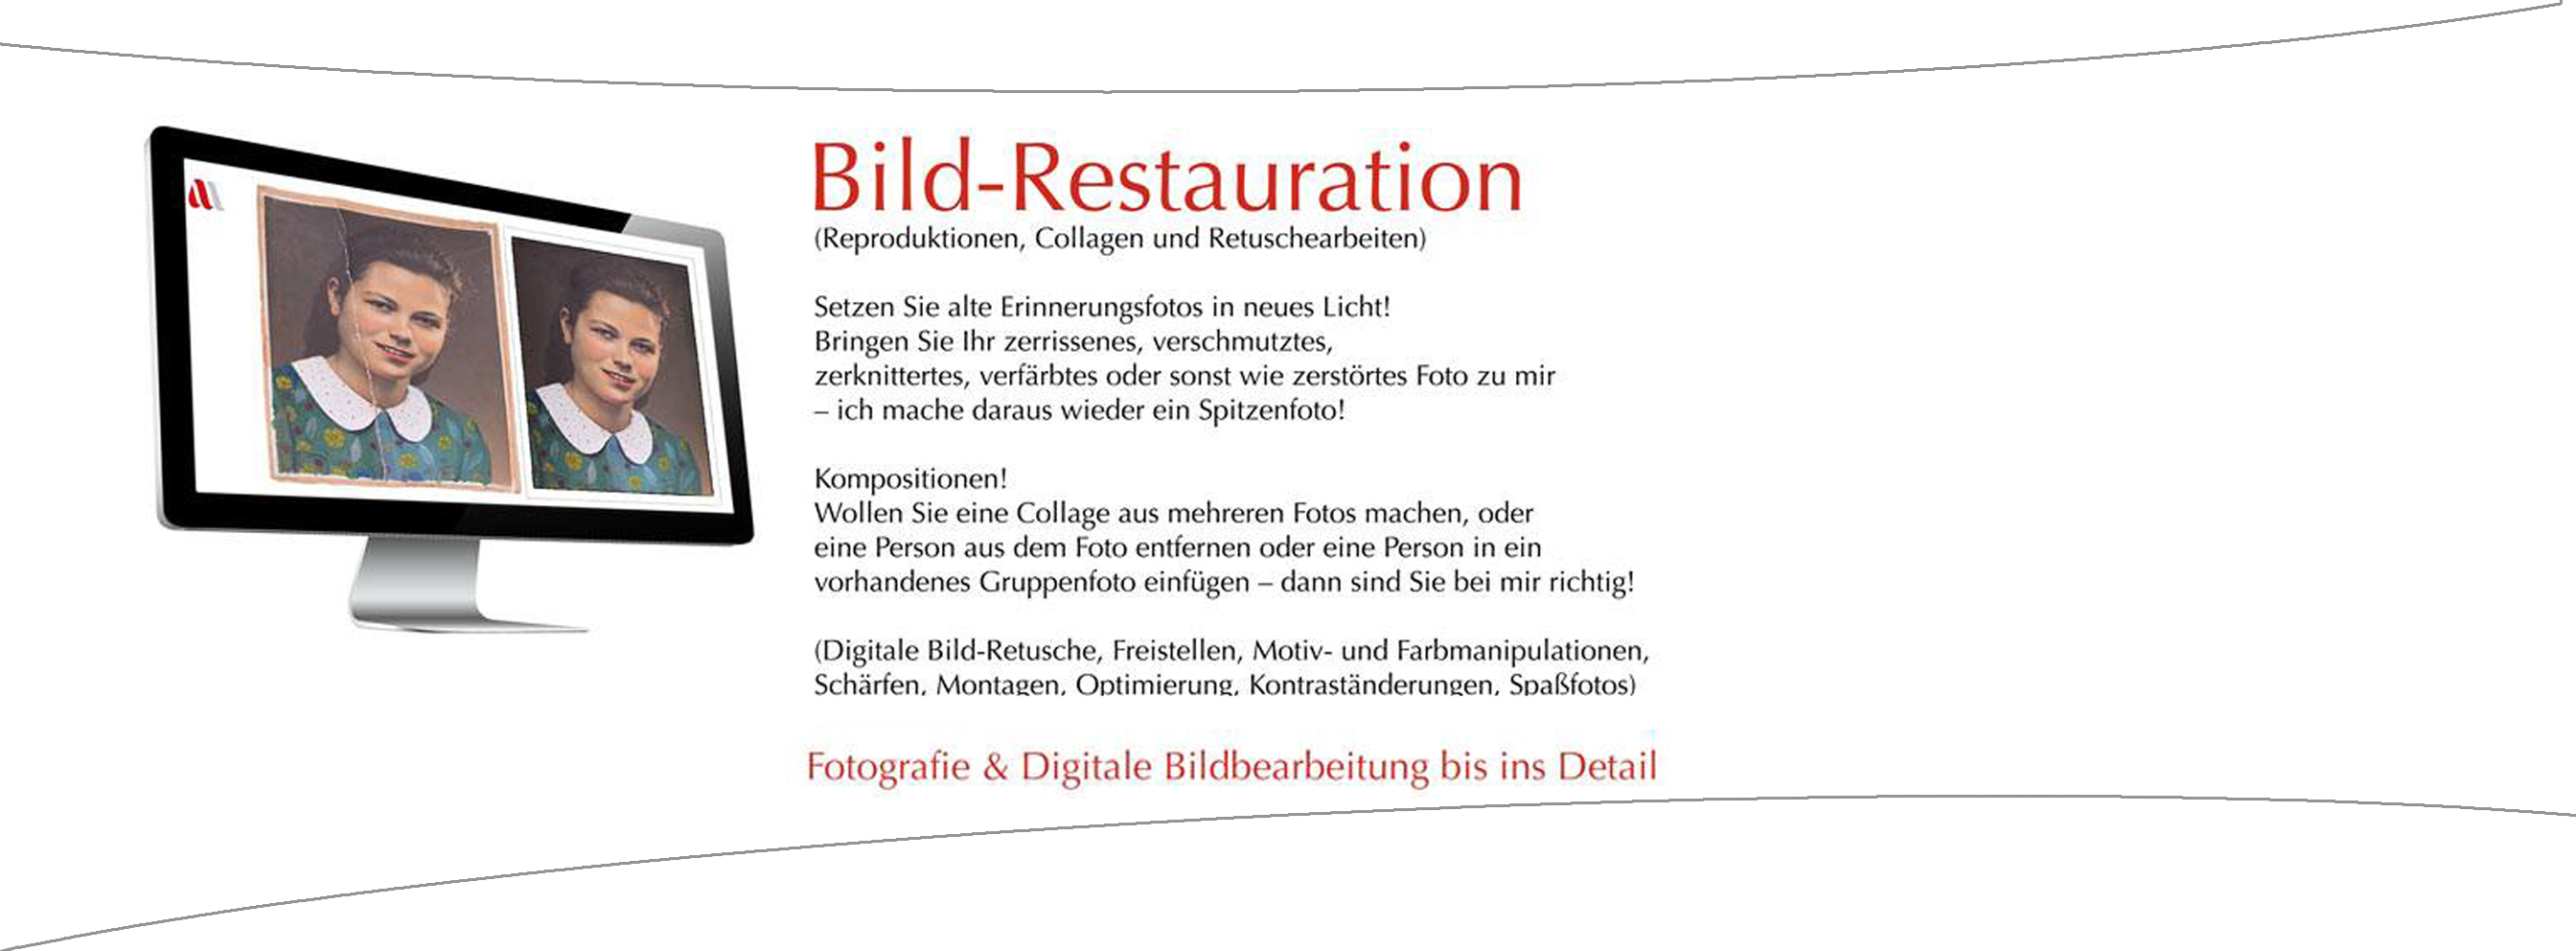 Bild-Restauration